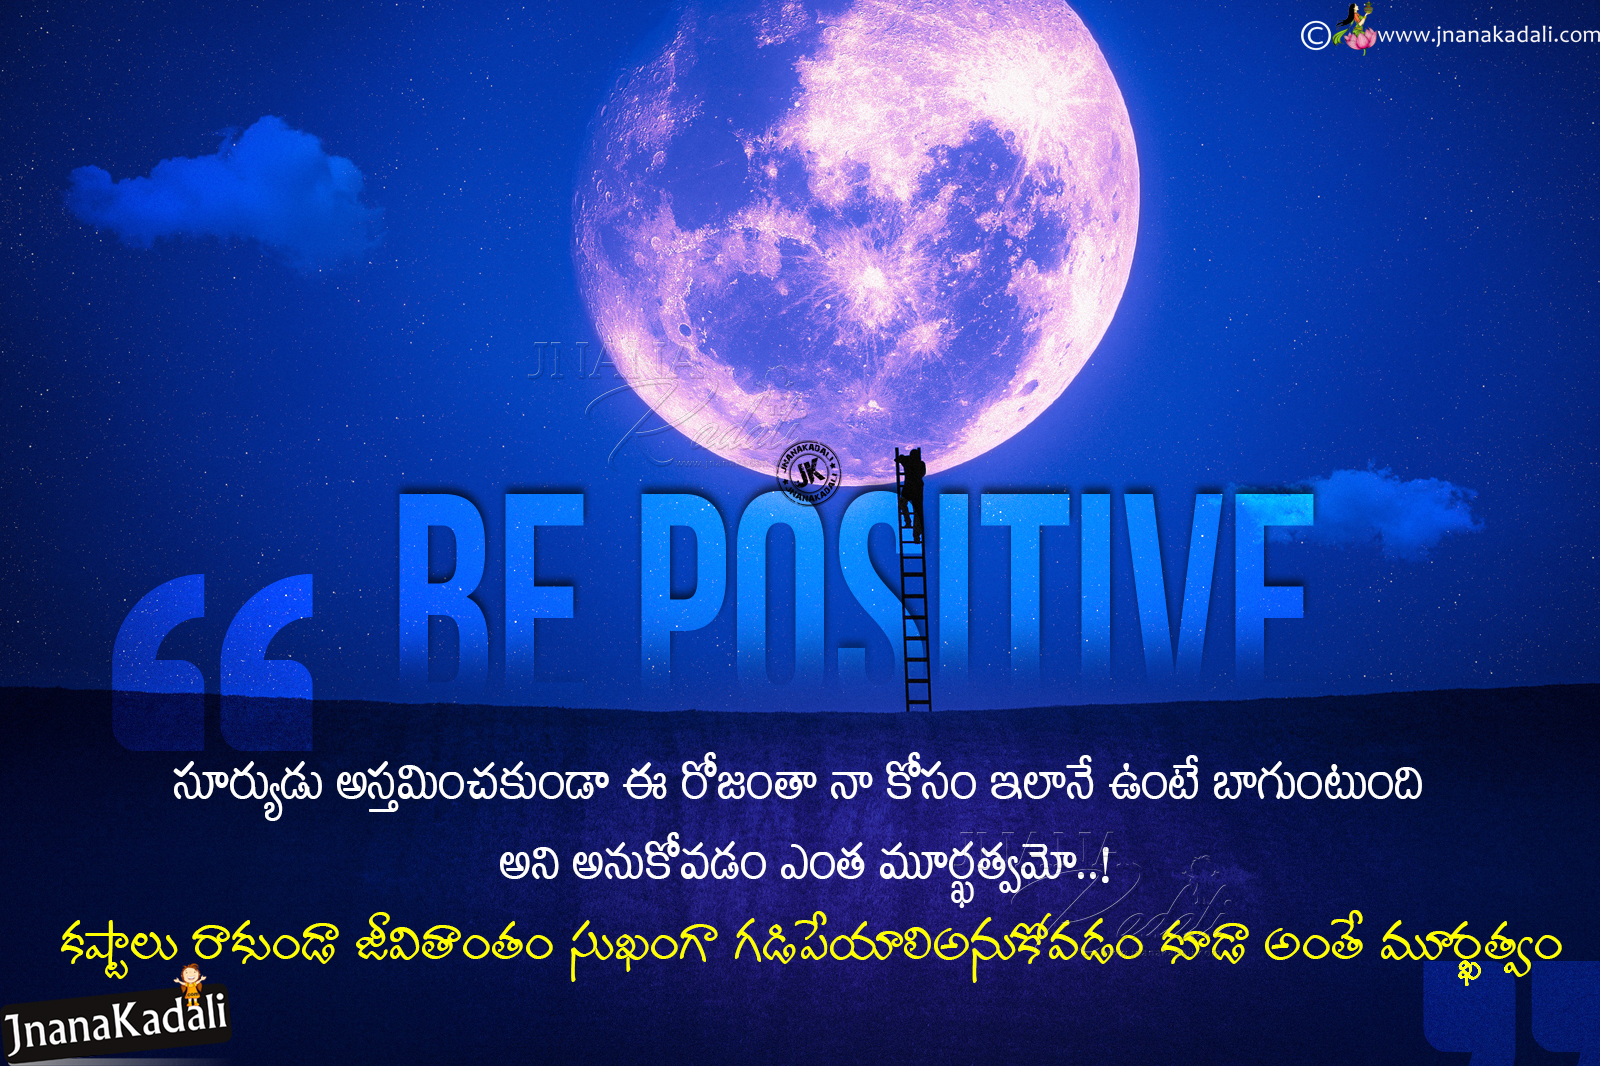 Telugu Quotesnice Motivational Quotes About Life Positive Hd Wallpapers Whats App Sharing Best Attitude Messages In